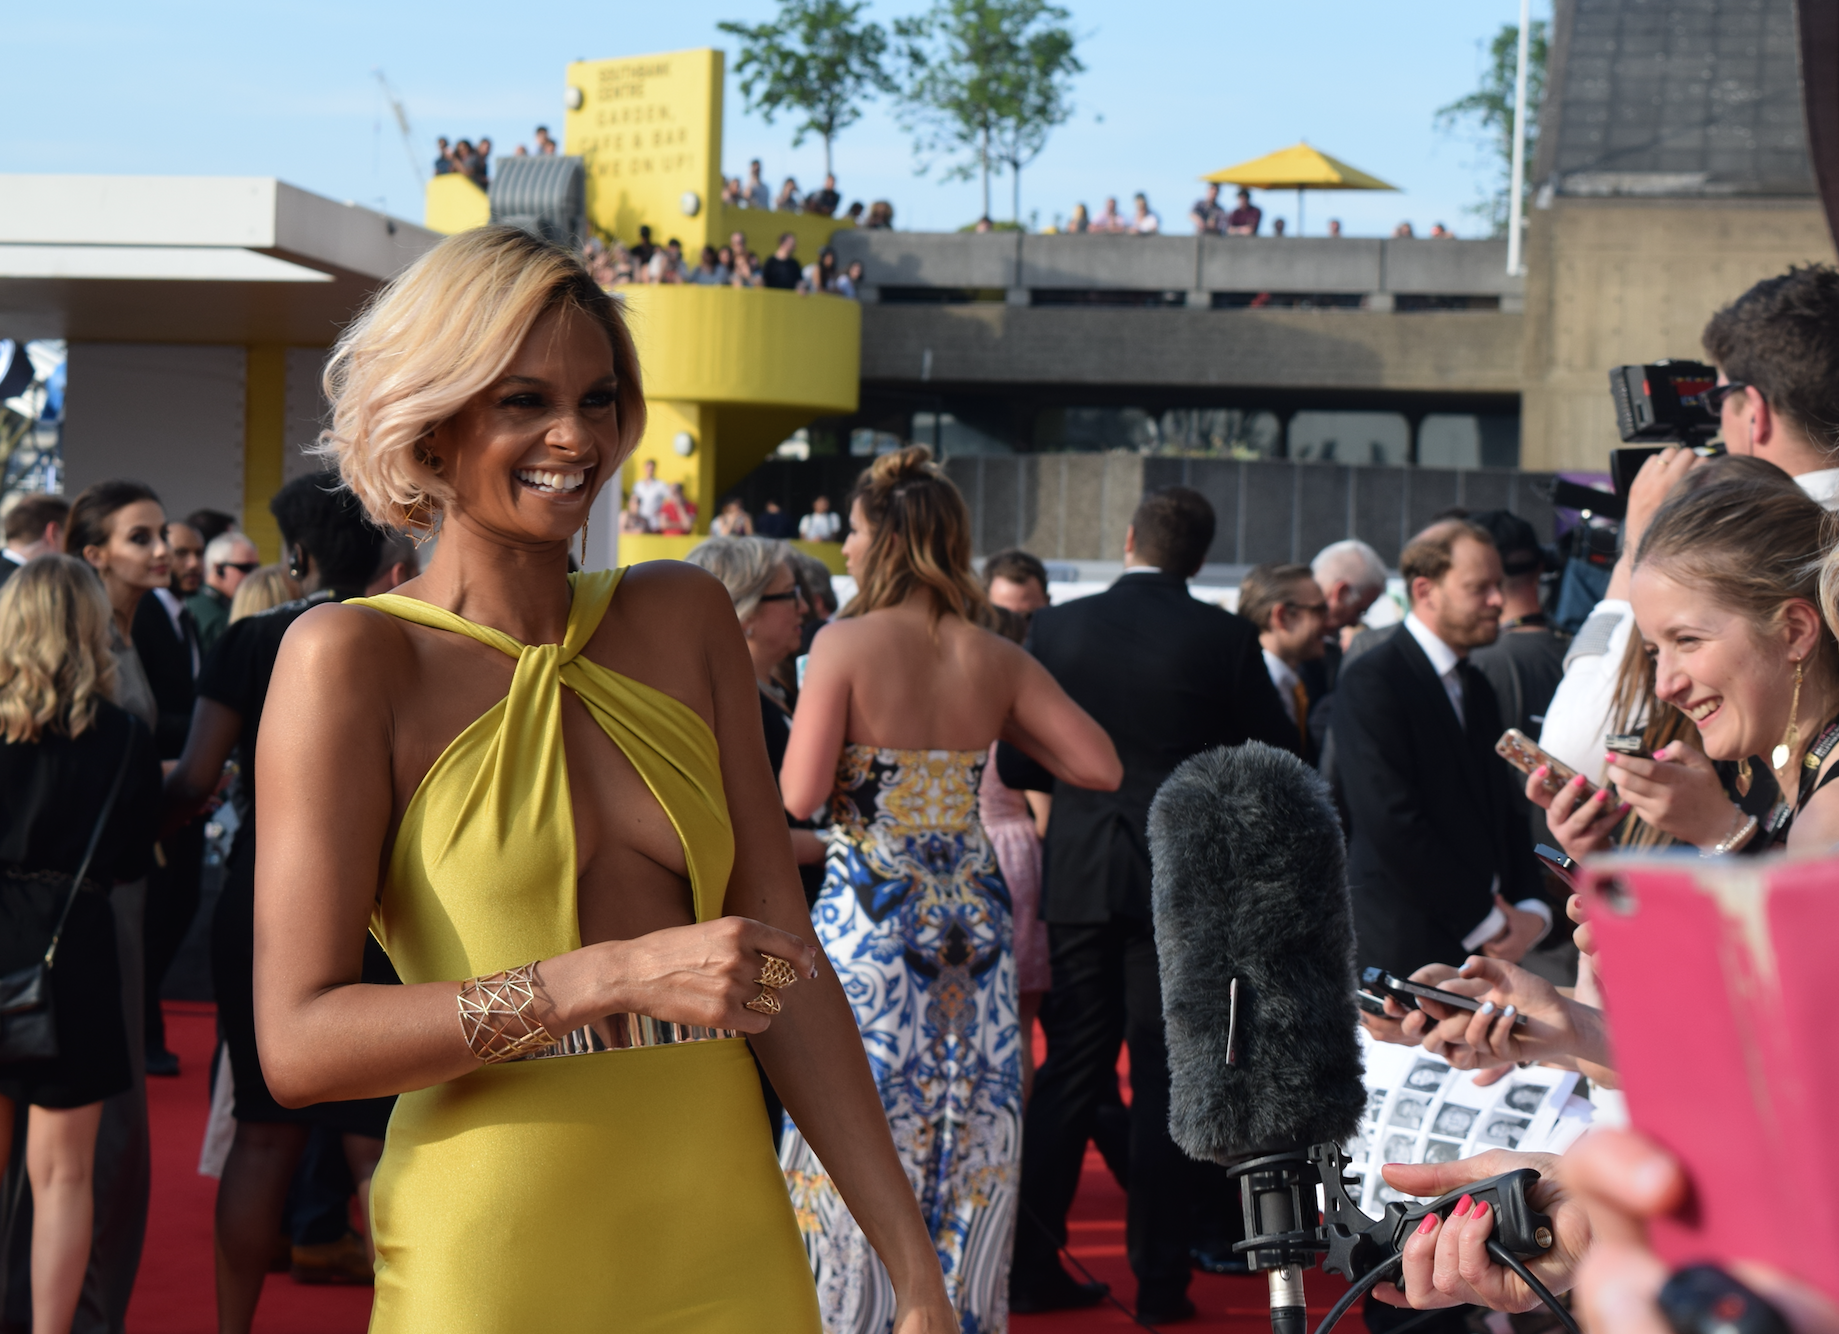 Could Britain's Got Talent judge Alesha Dixon be any more glowing and gorgeous?!